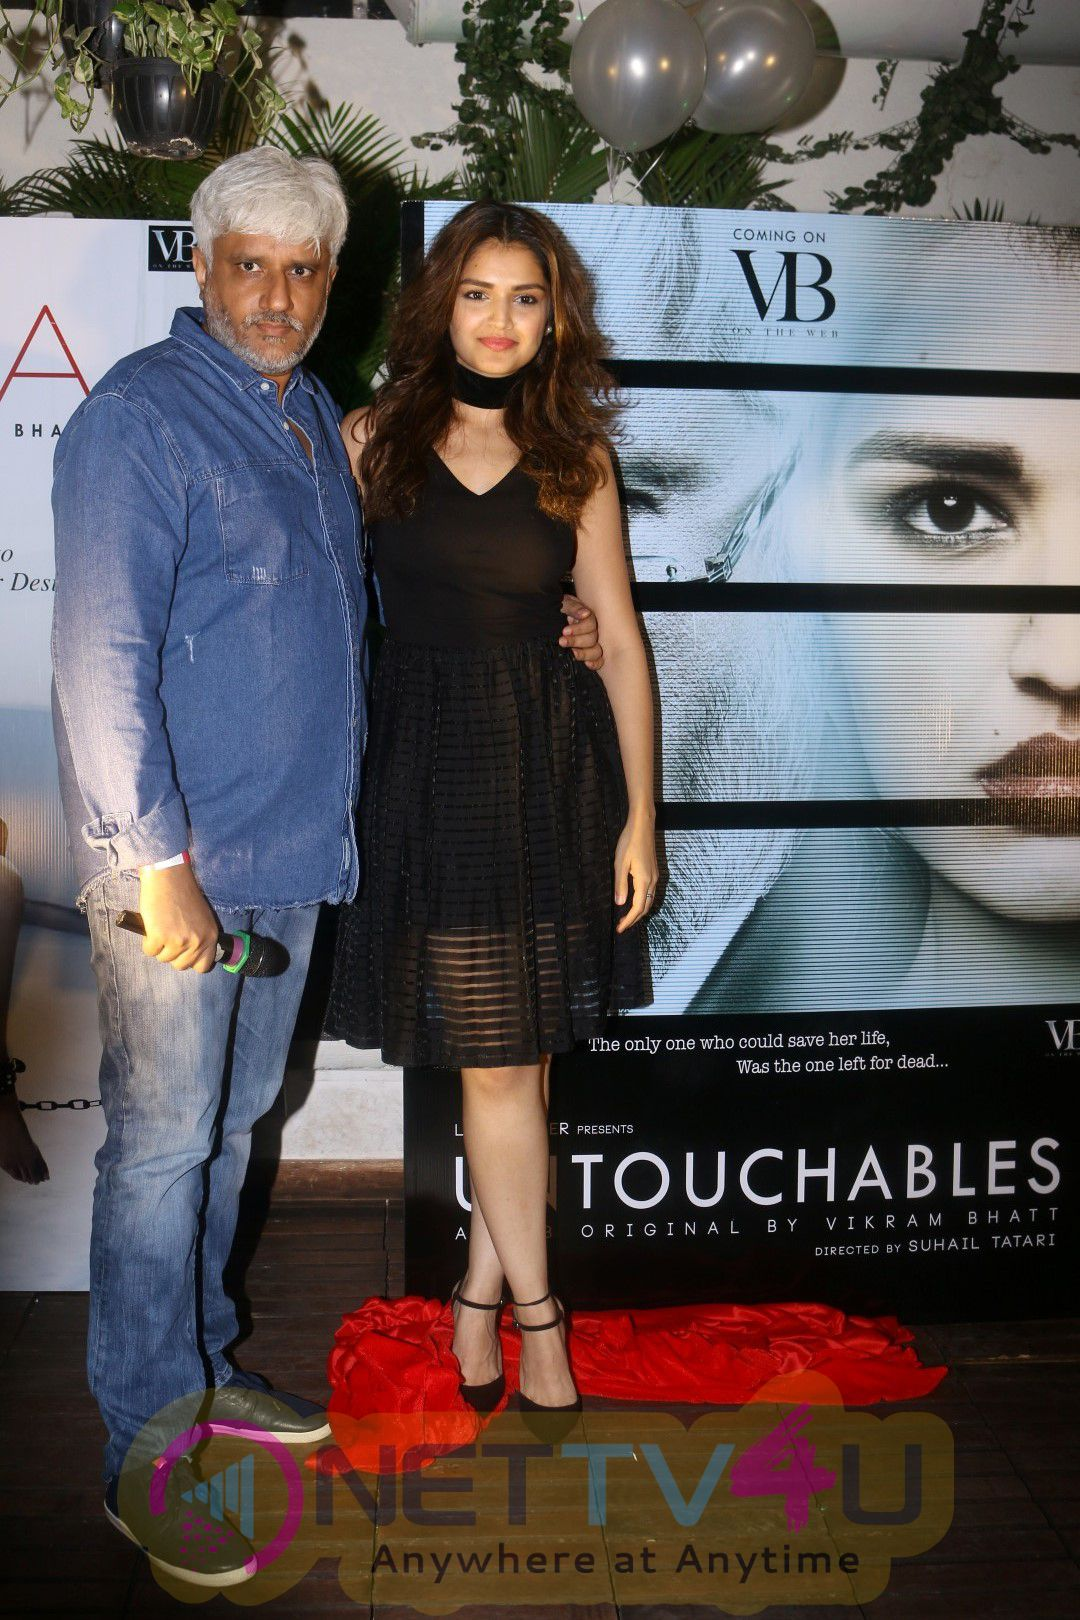 Launch Of VB On Web With Vikram Bhatt & Many Others Photos Hindi Gallery